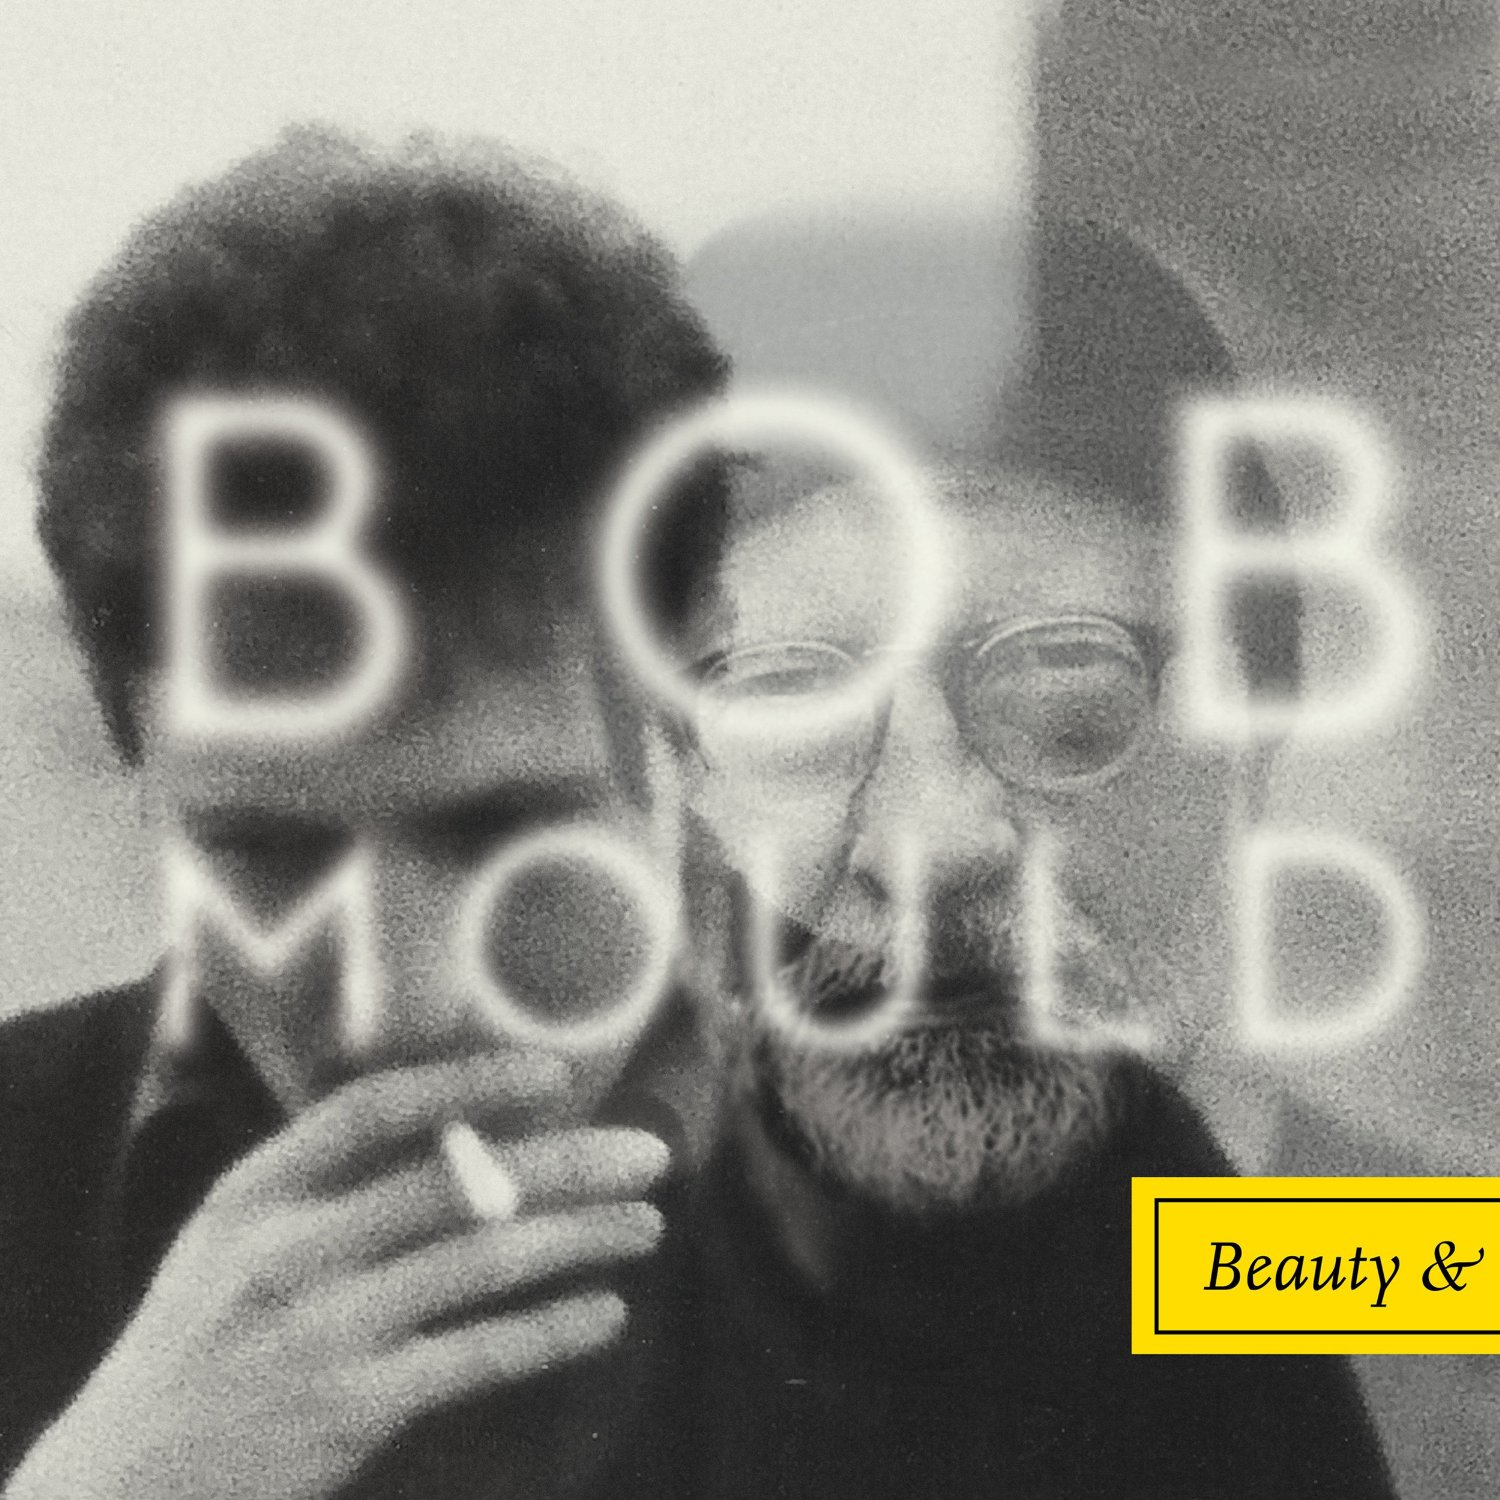 Though He Claims That S Out Of Inspiration On The Searing Fix It Bob Mould Is Anything But His 11th Solo Al Former Sugar And Hüsker Dü